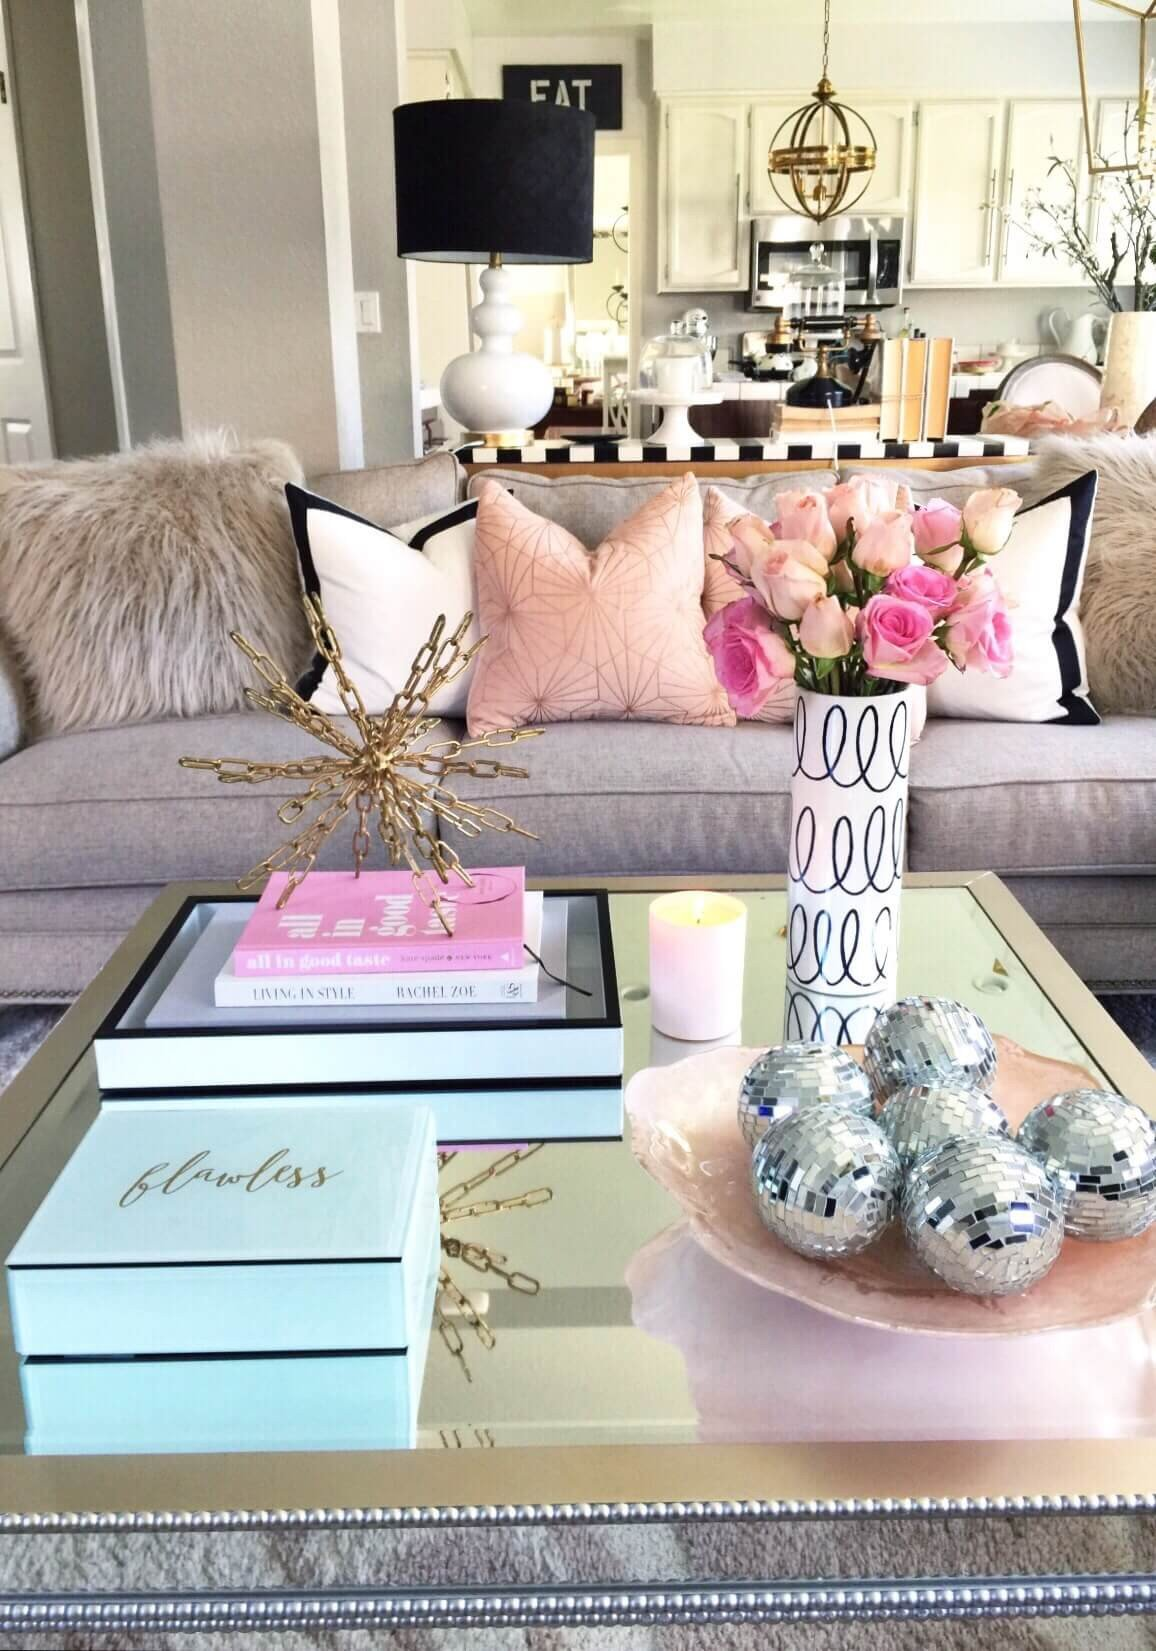 Table Decorating Ideas Living Room Fresh 37 Best Coffee Table Decorating Ideas and Designs for 2017